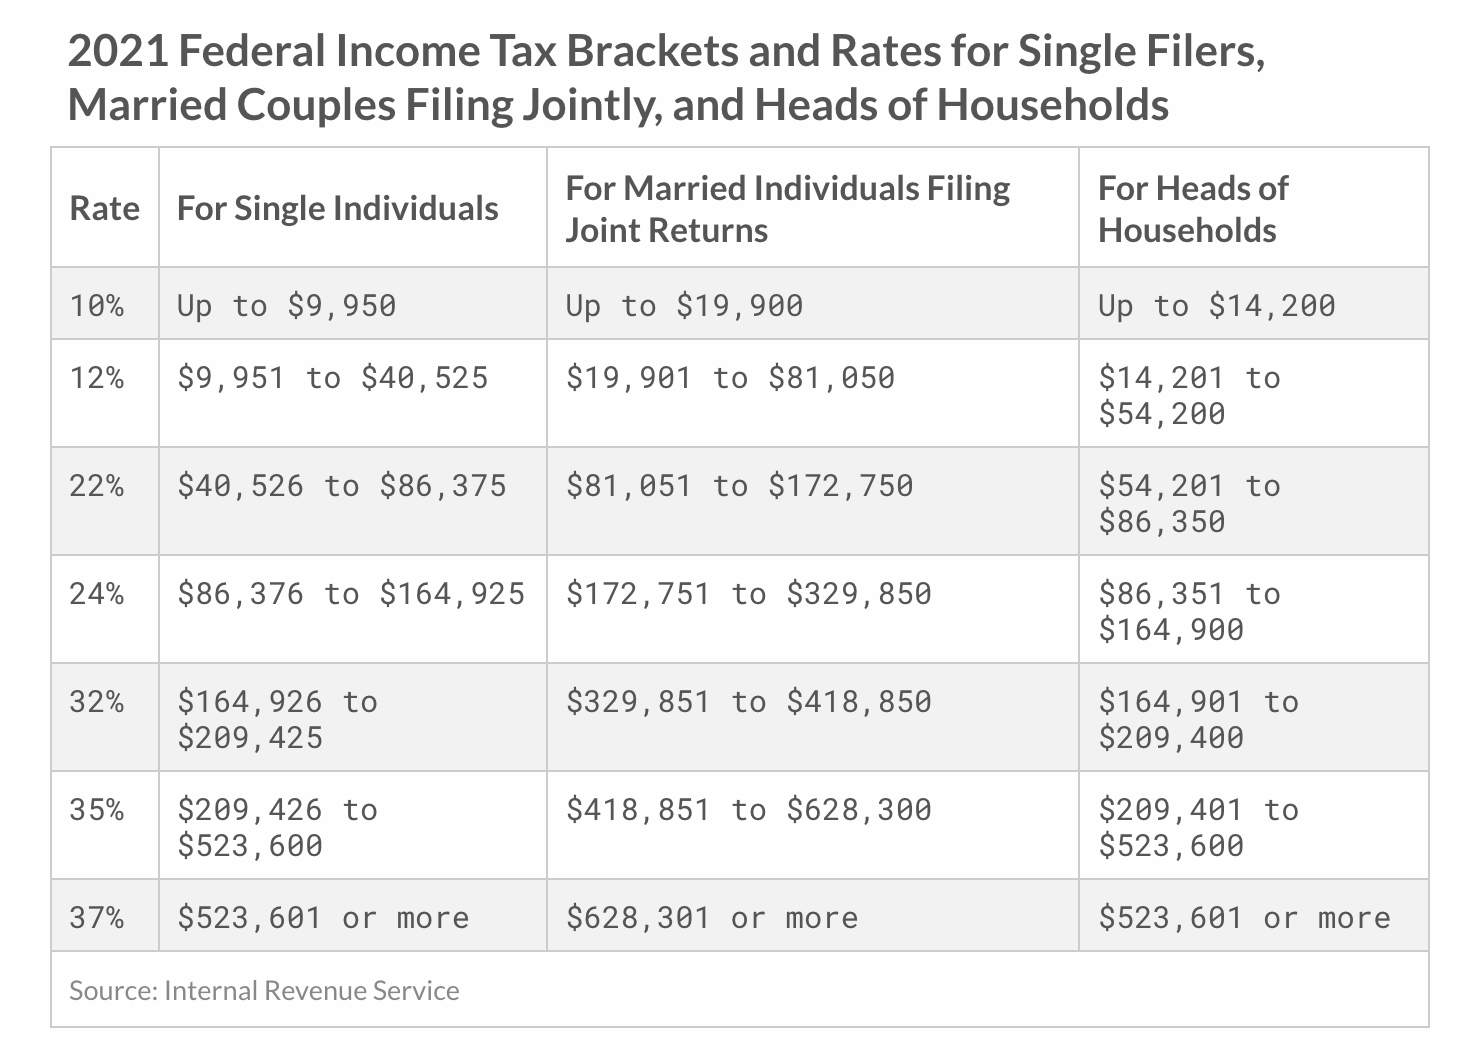 The federal income tax brackets for 2021